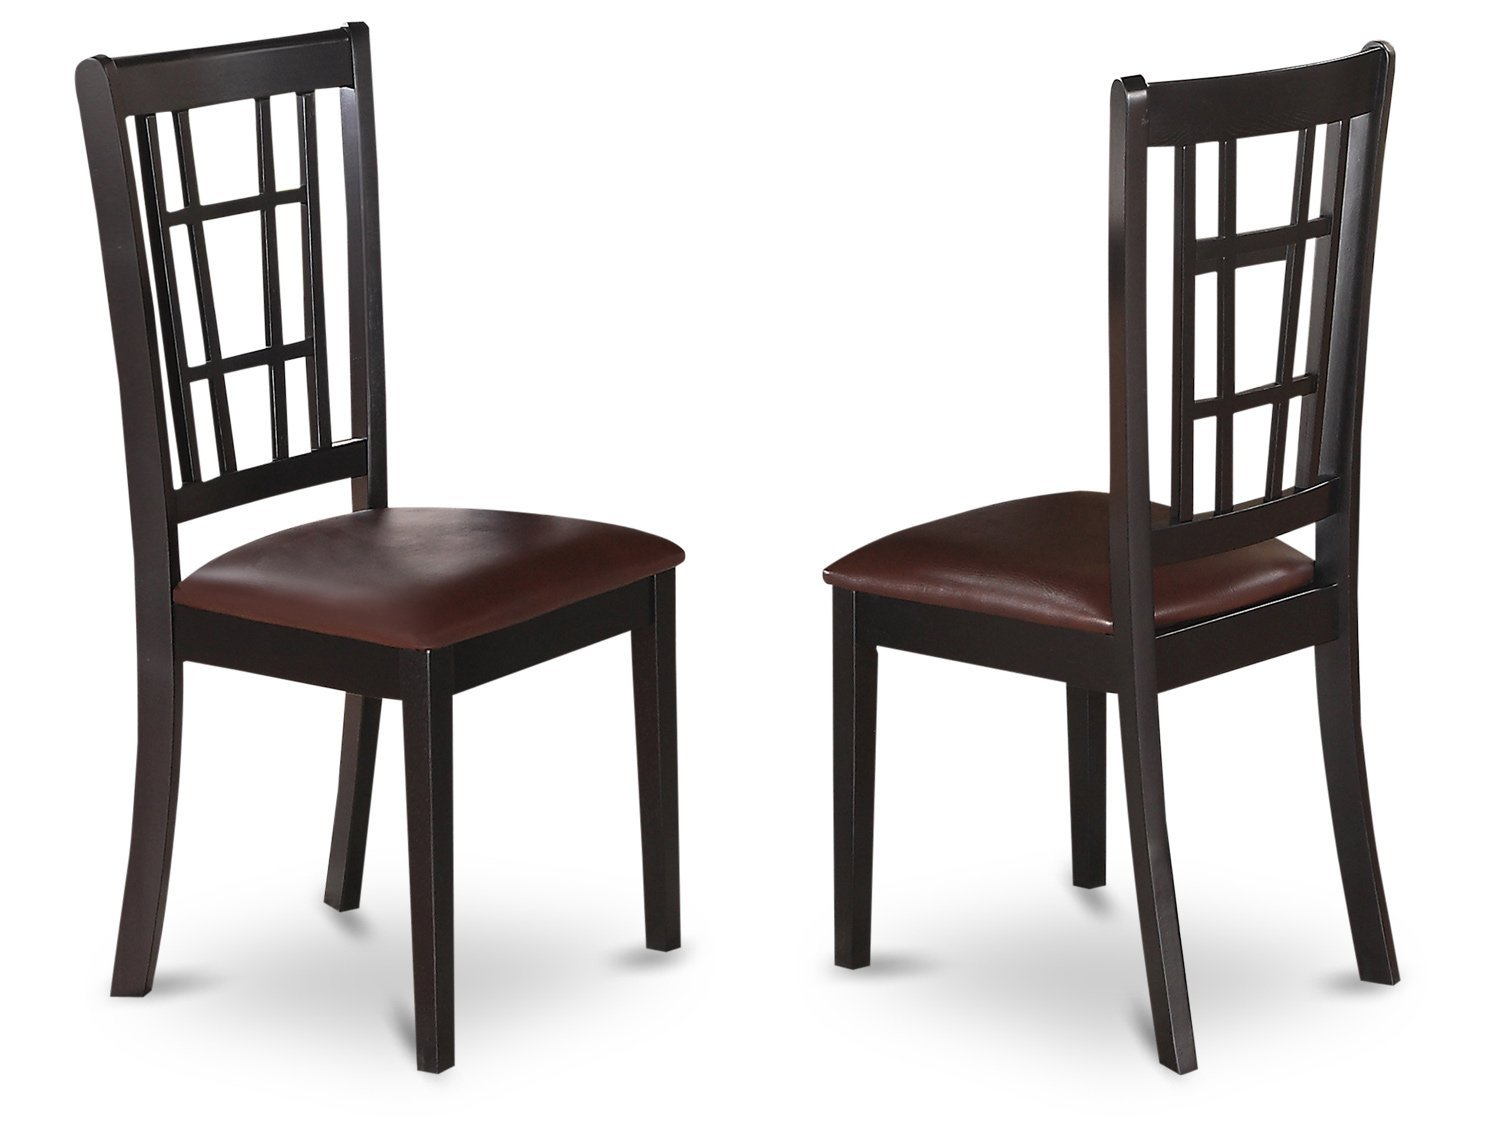 East West Furniture NIC-BLK-LC Dining Chair Set with Faux Leather Upholstered Seat, Set of 2